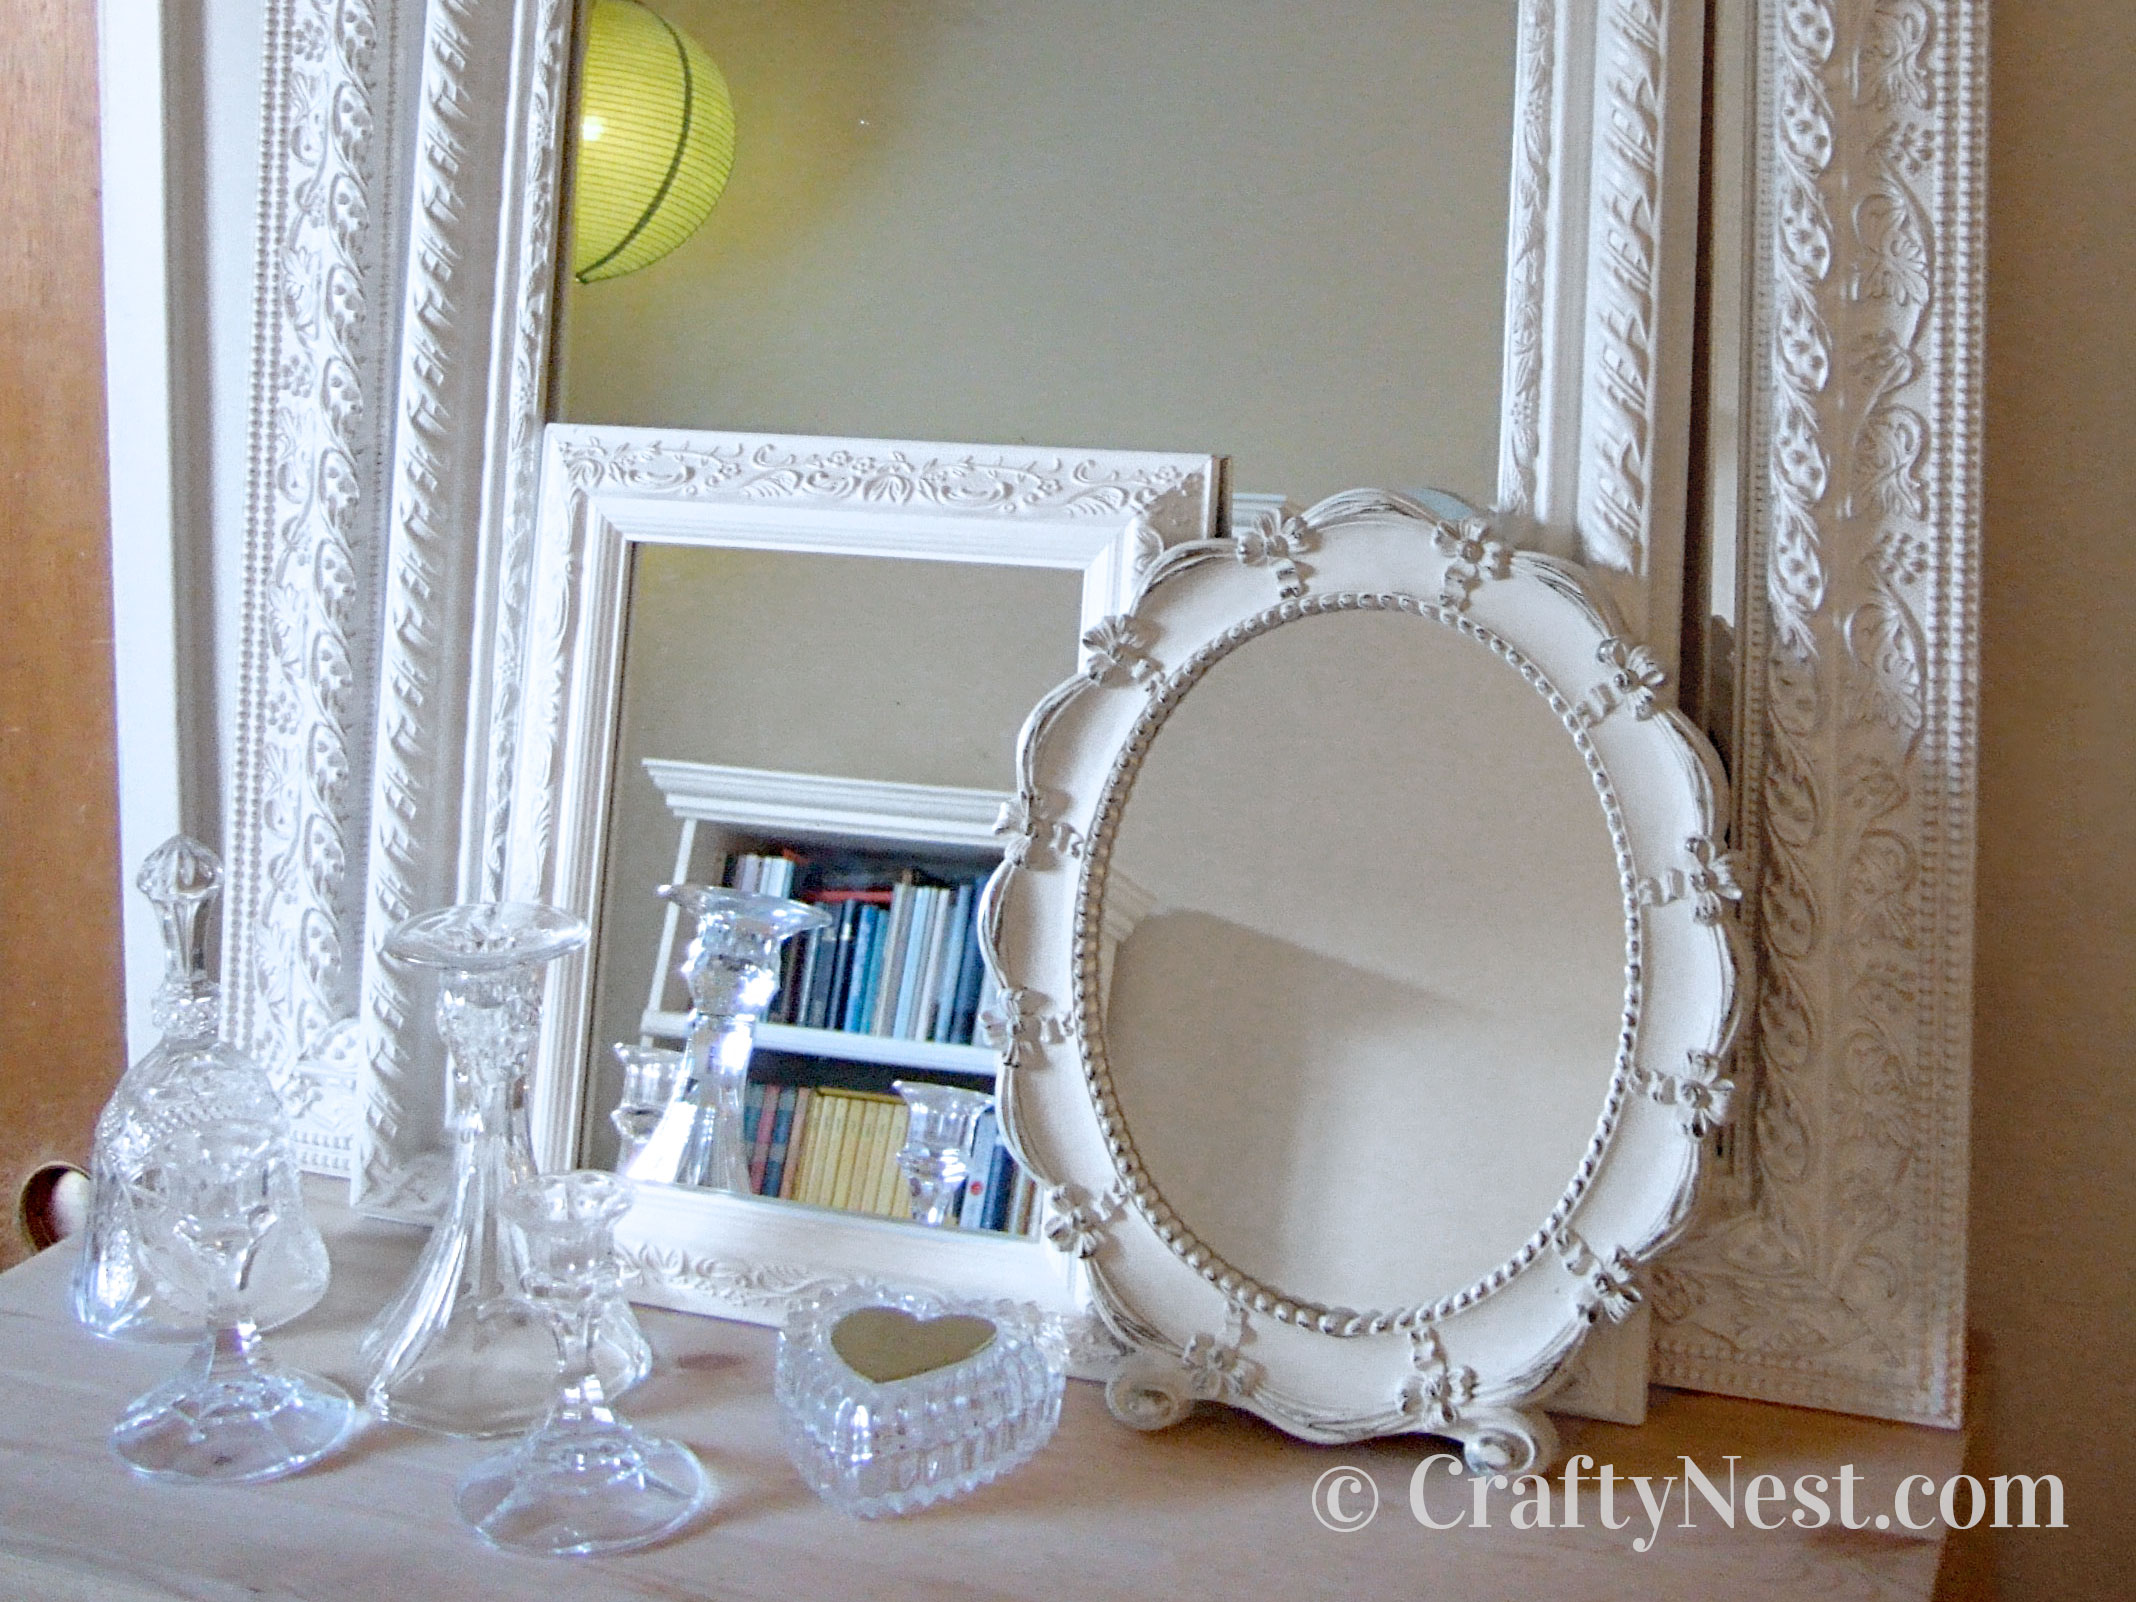 Stacked mirrors and crystal items, photo